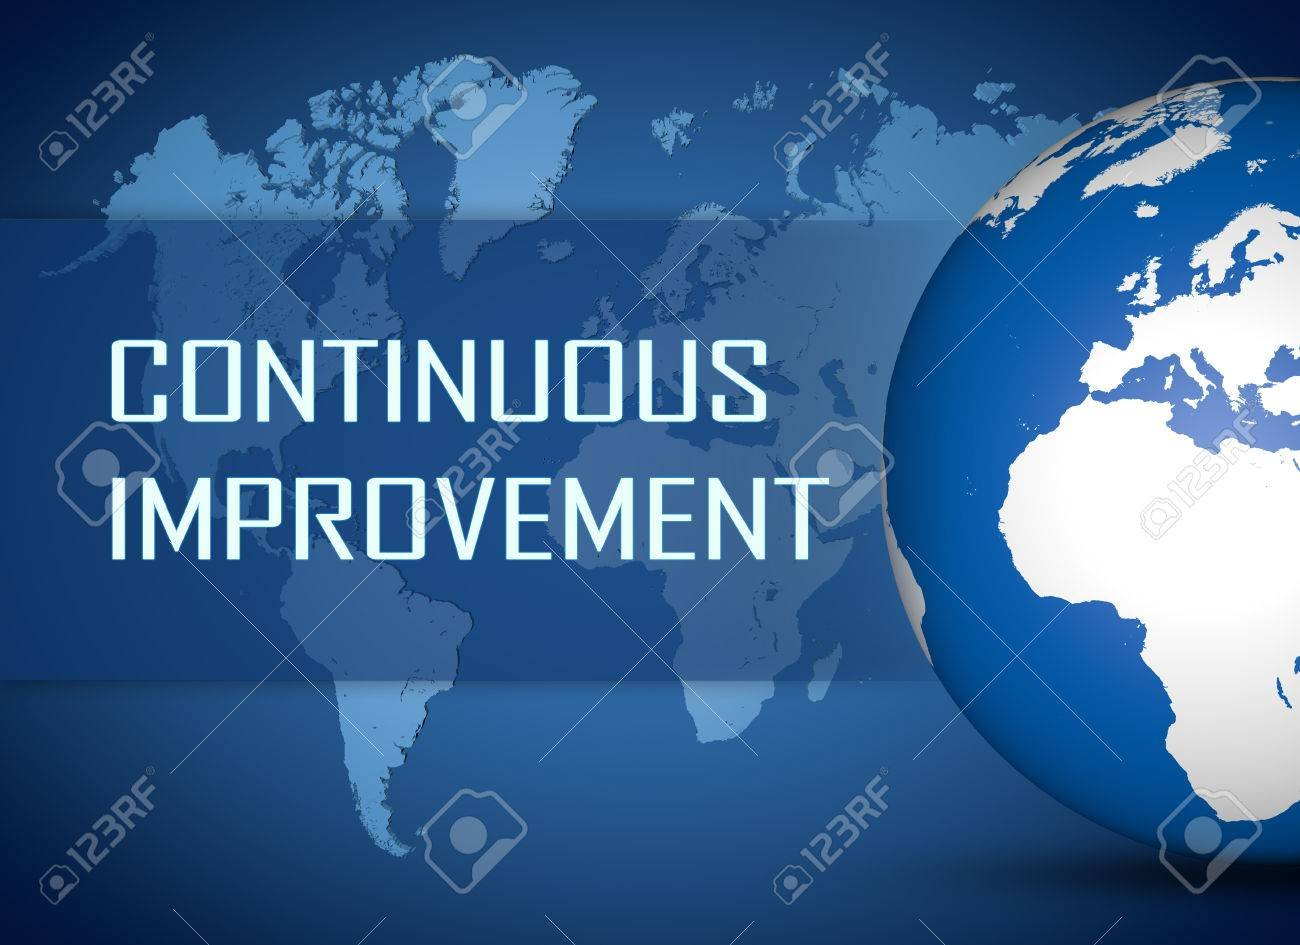 Continuous Improvement Concept With Globe On Blue World Map 1300x945